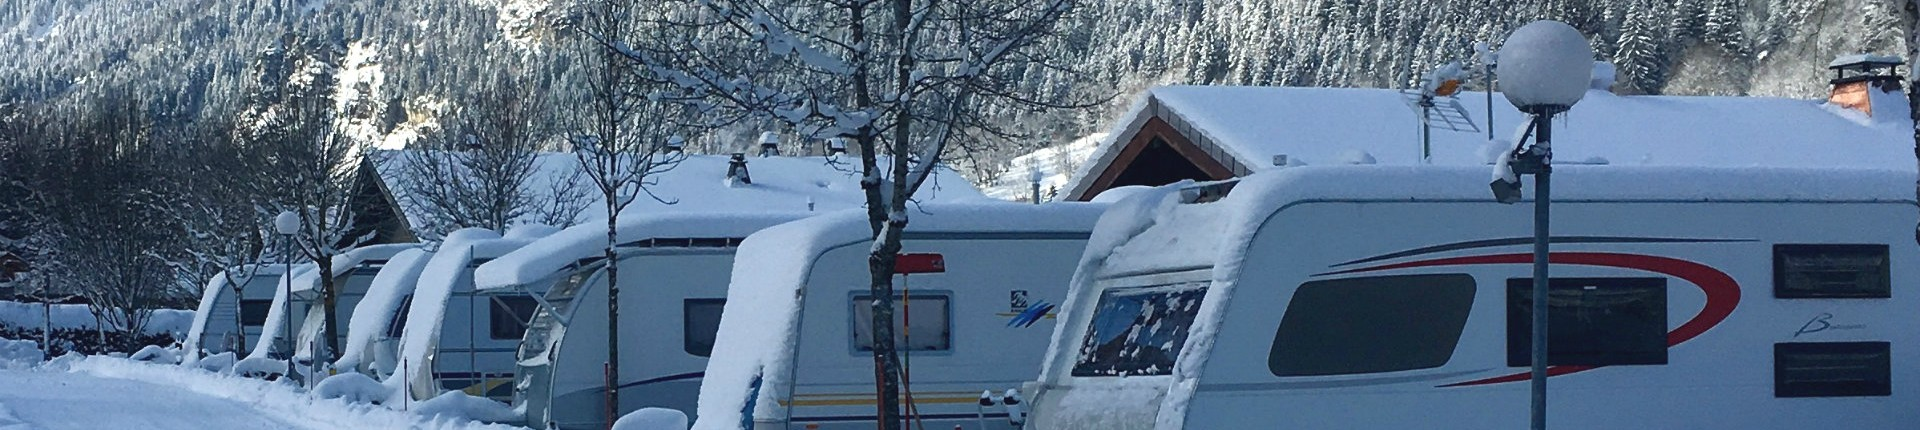 camping-l-oustalet-chatel-hiver-1-147